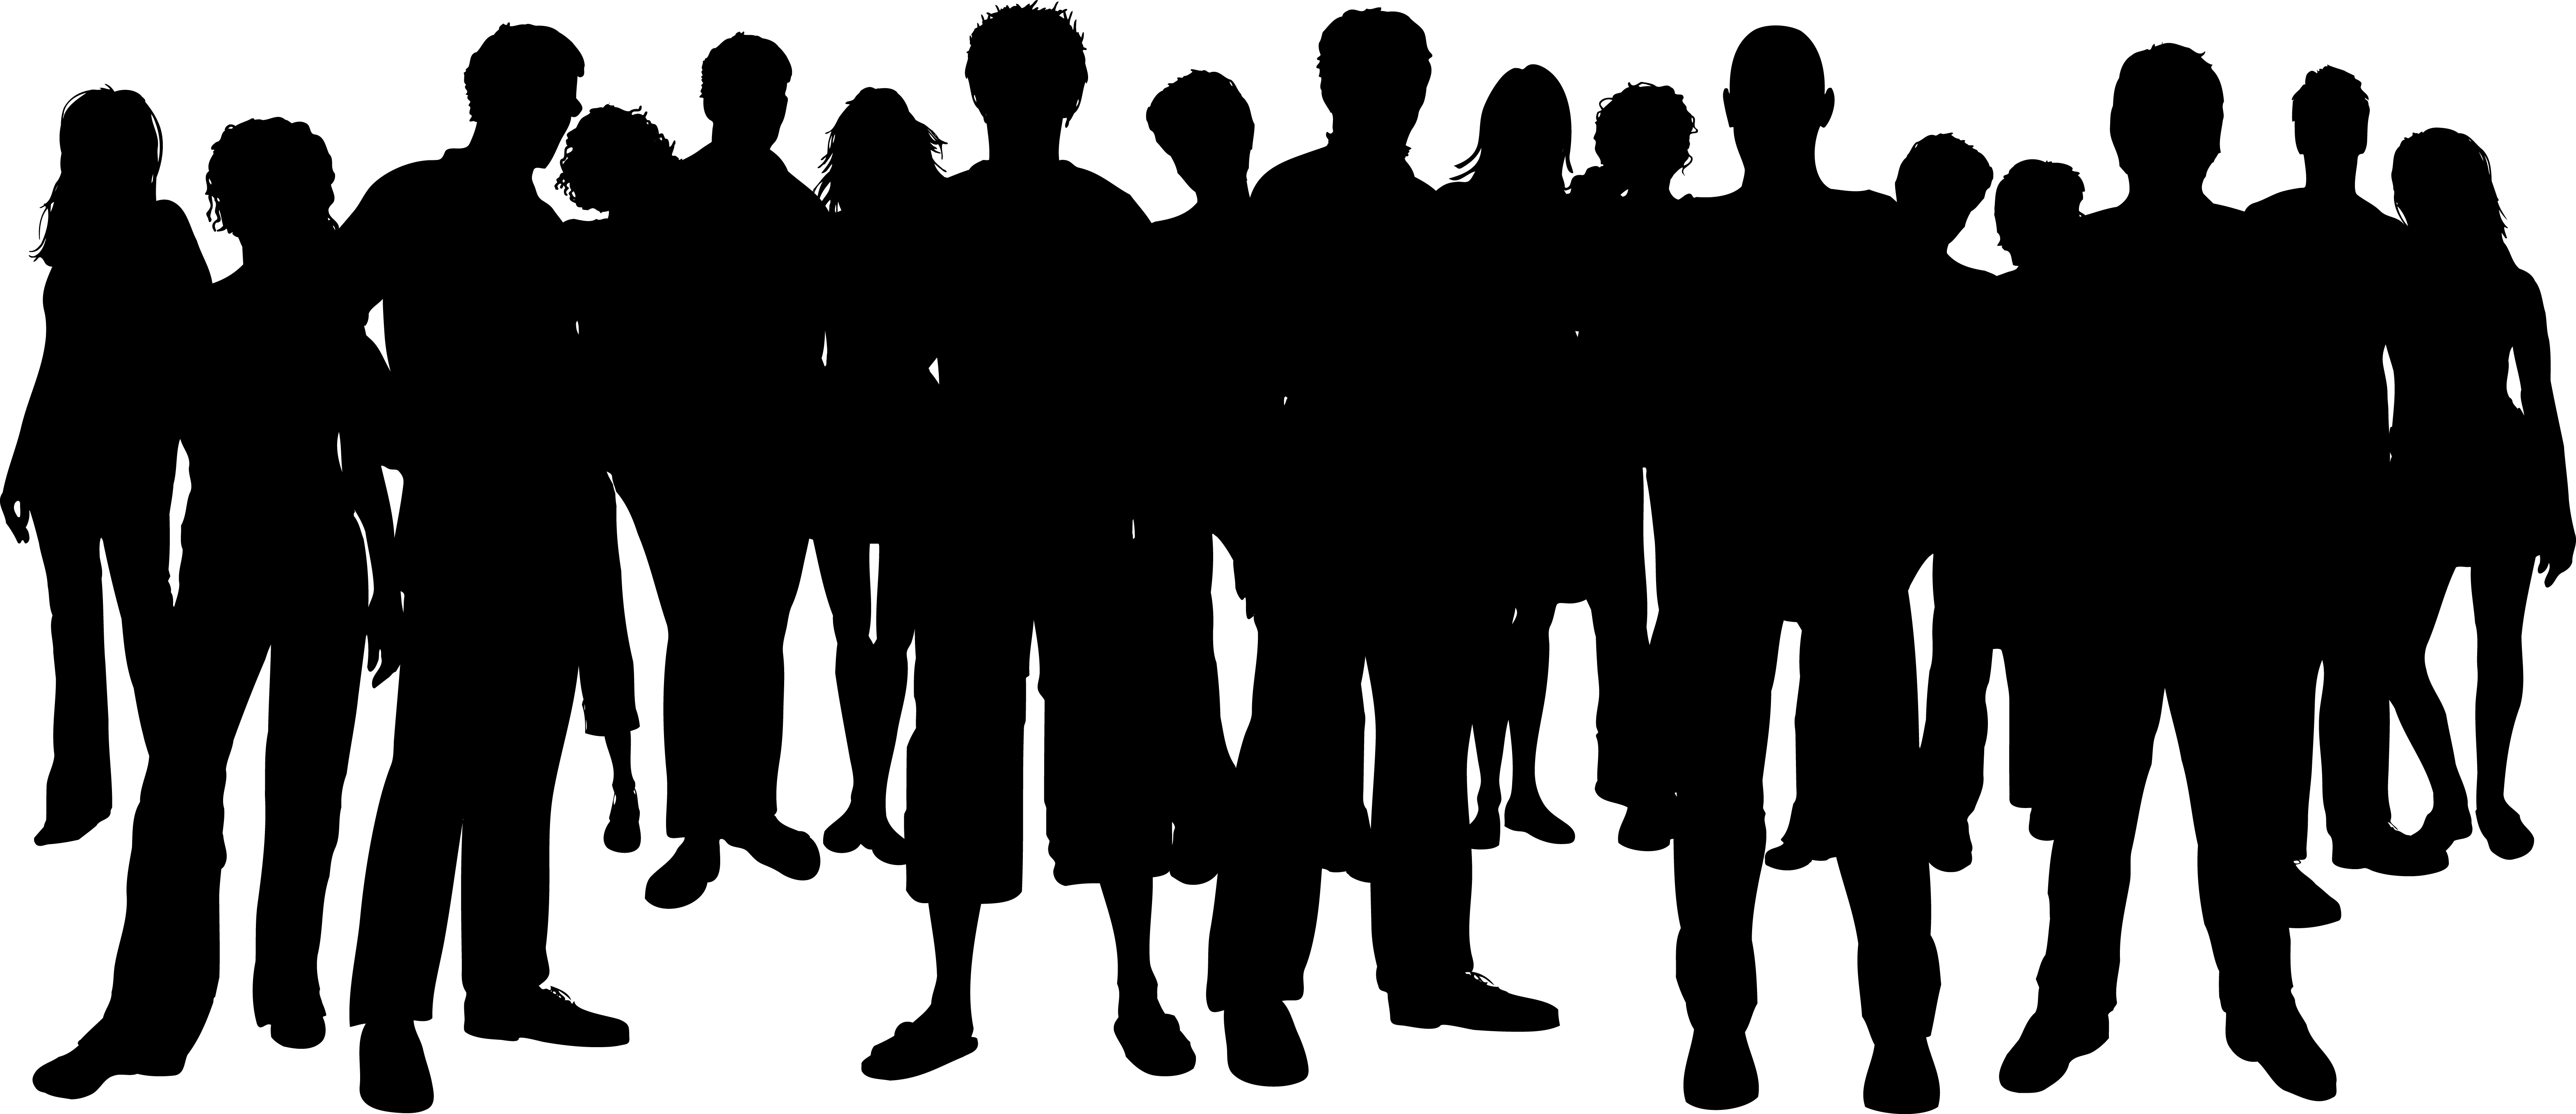 Clipart People - clipartall - People Clipart